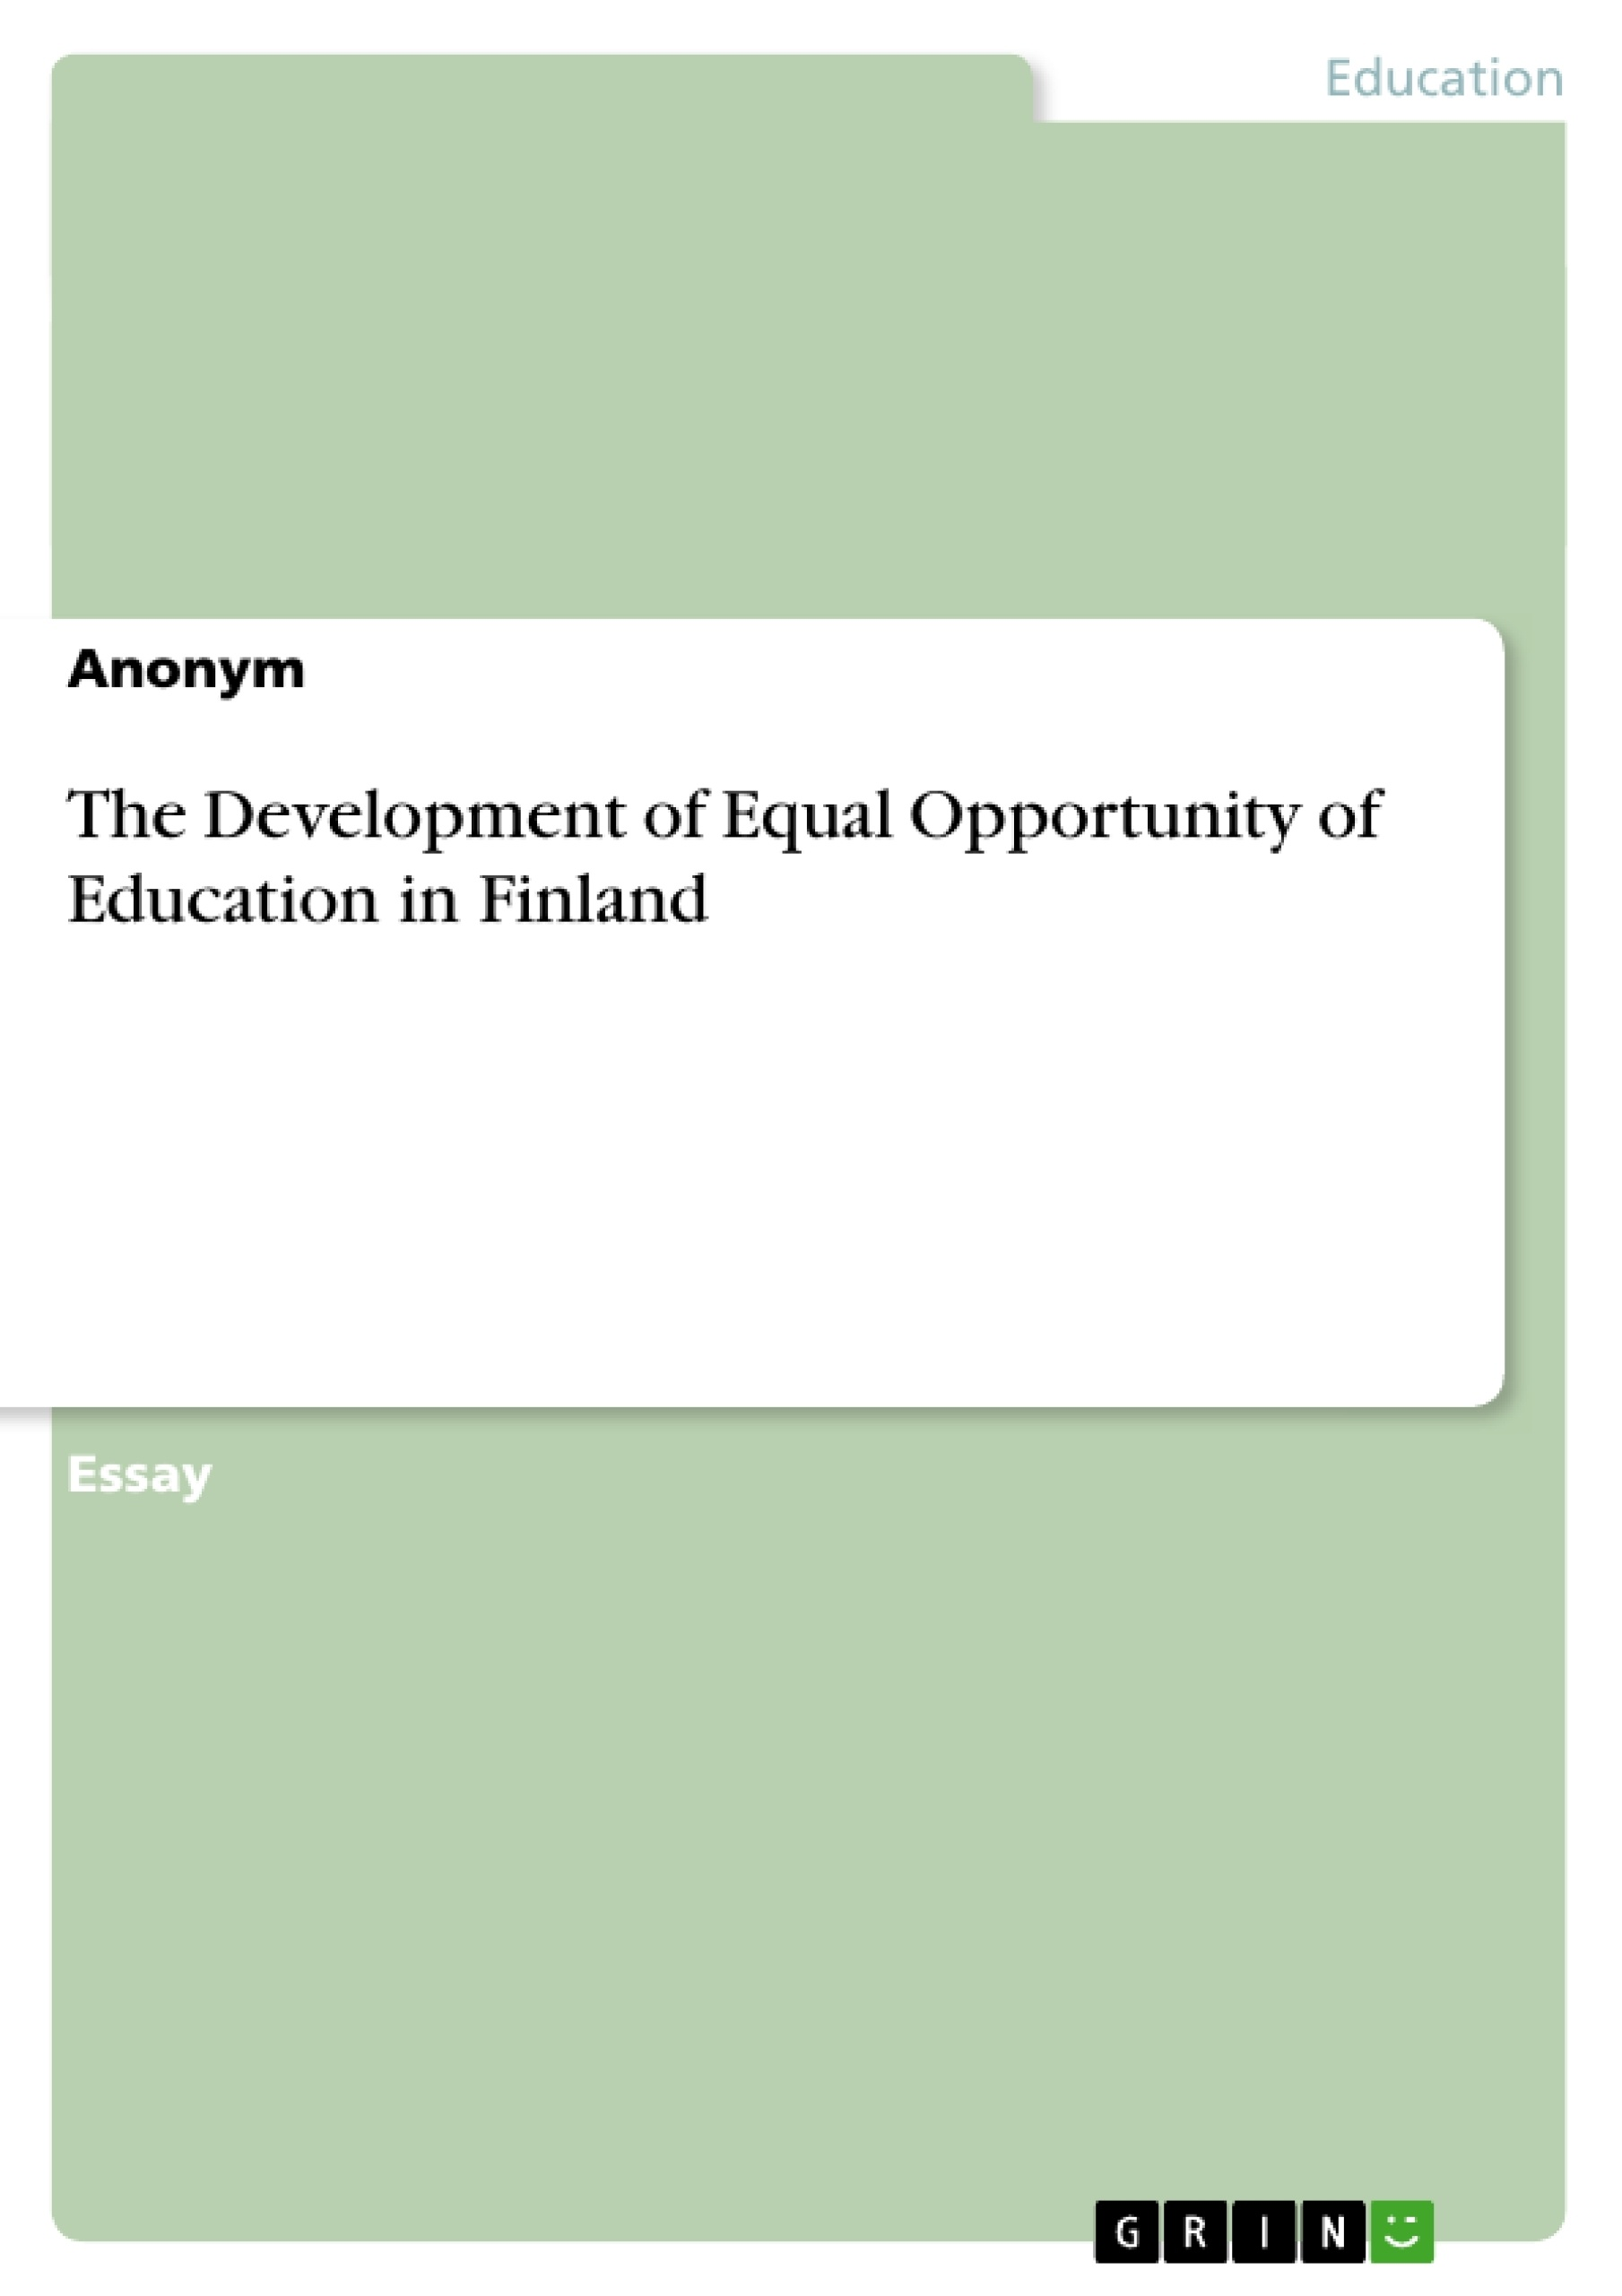 Title: The Development of Equal Opportunity of Education in Finland